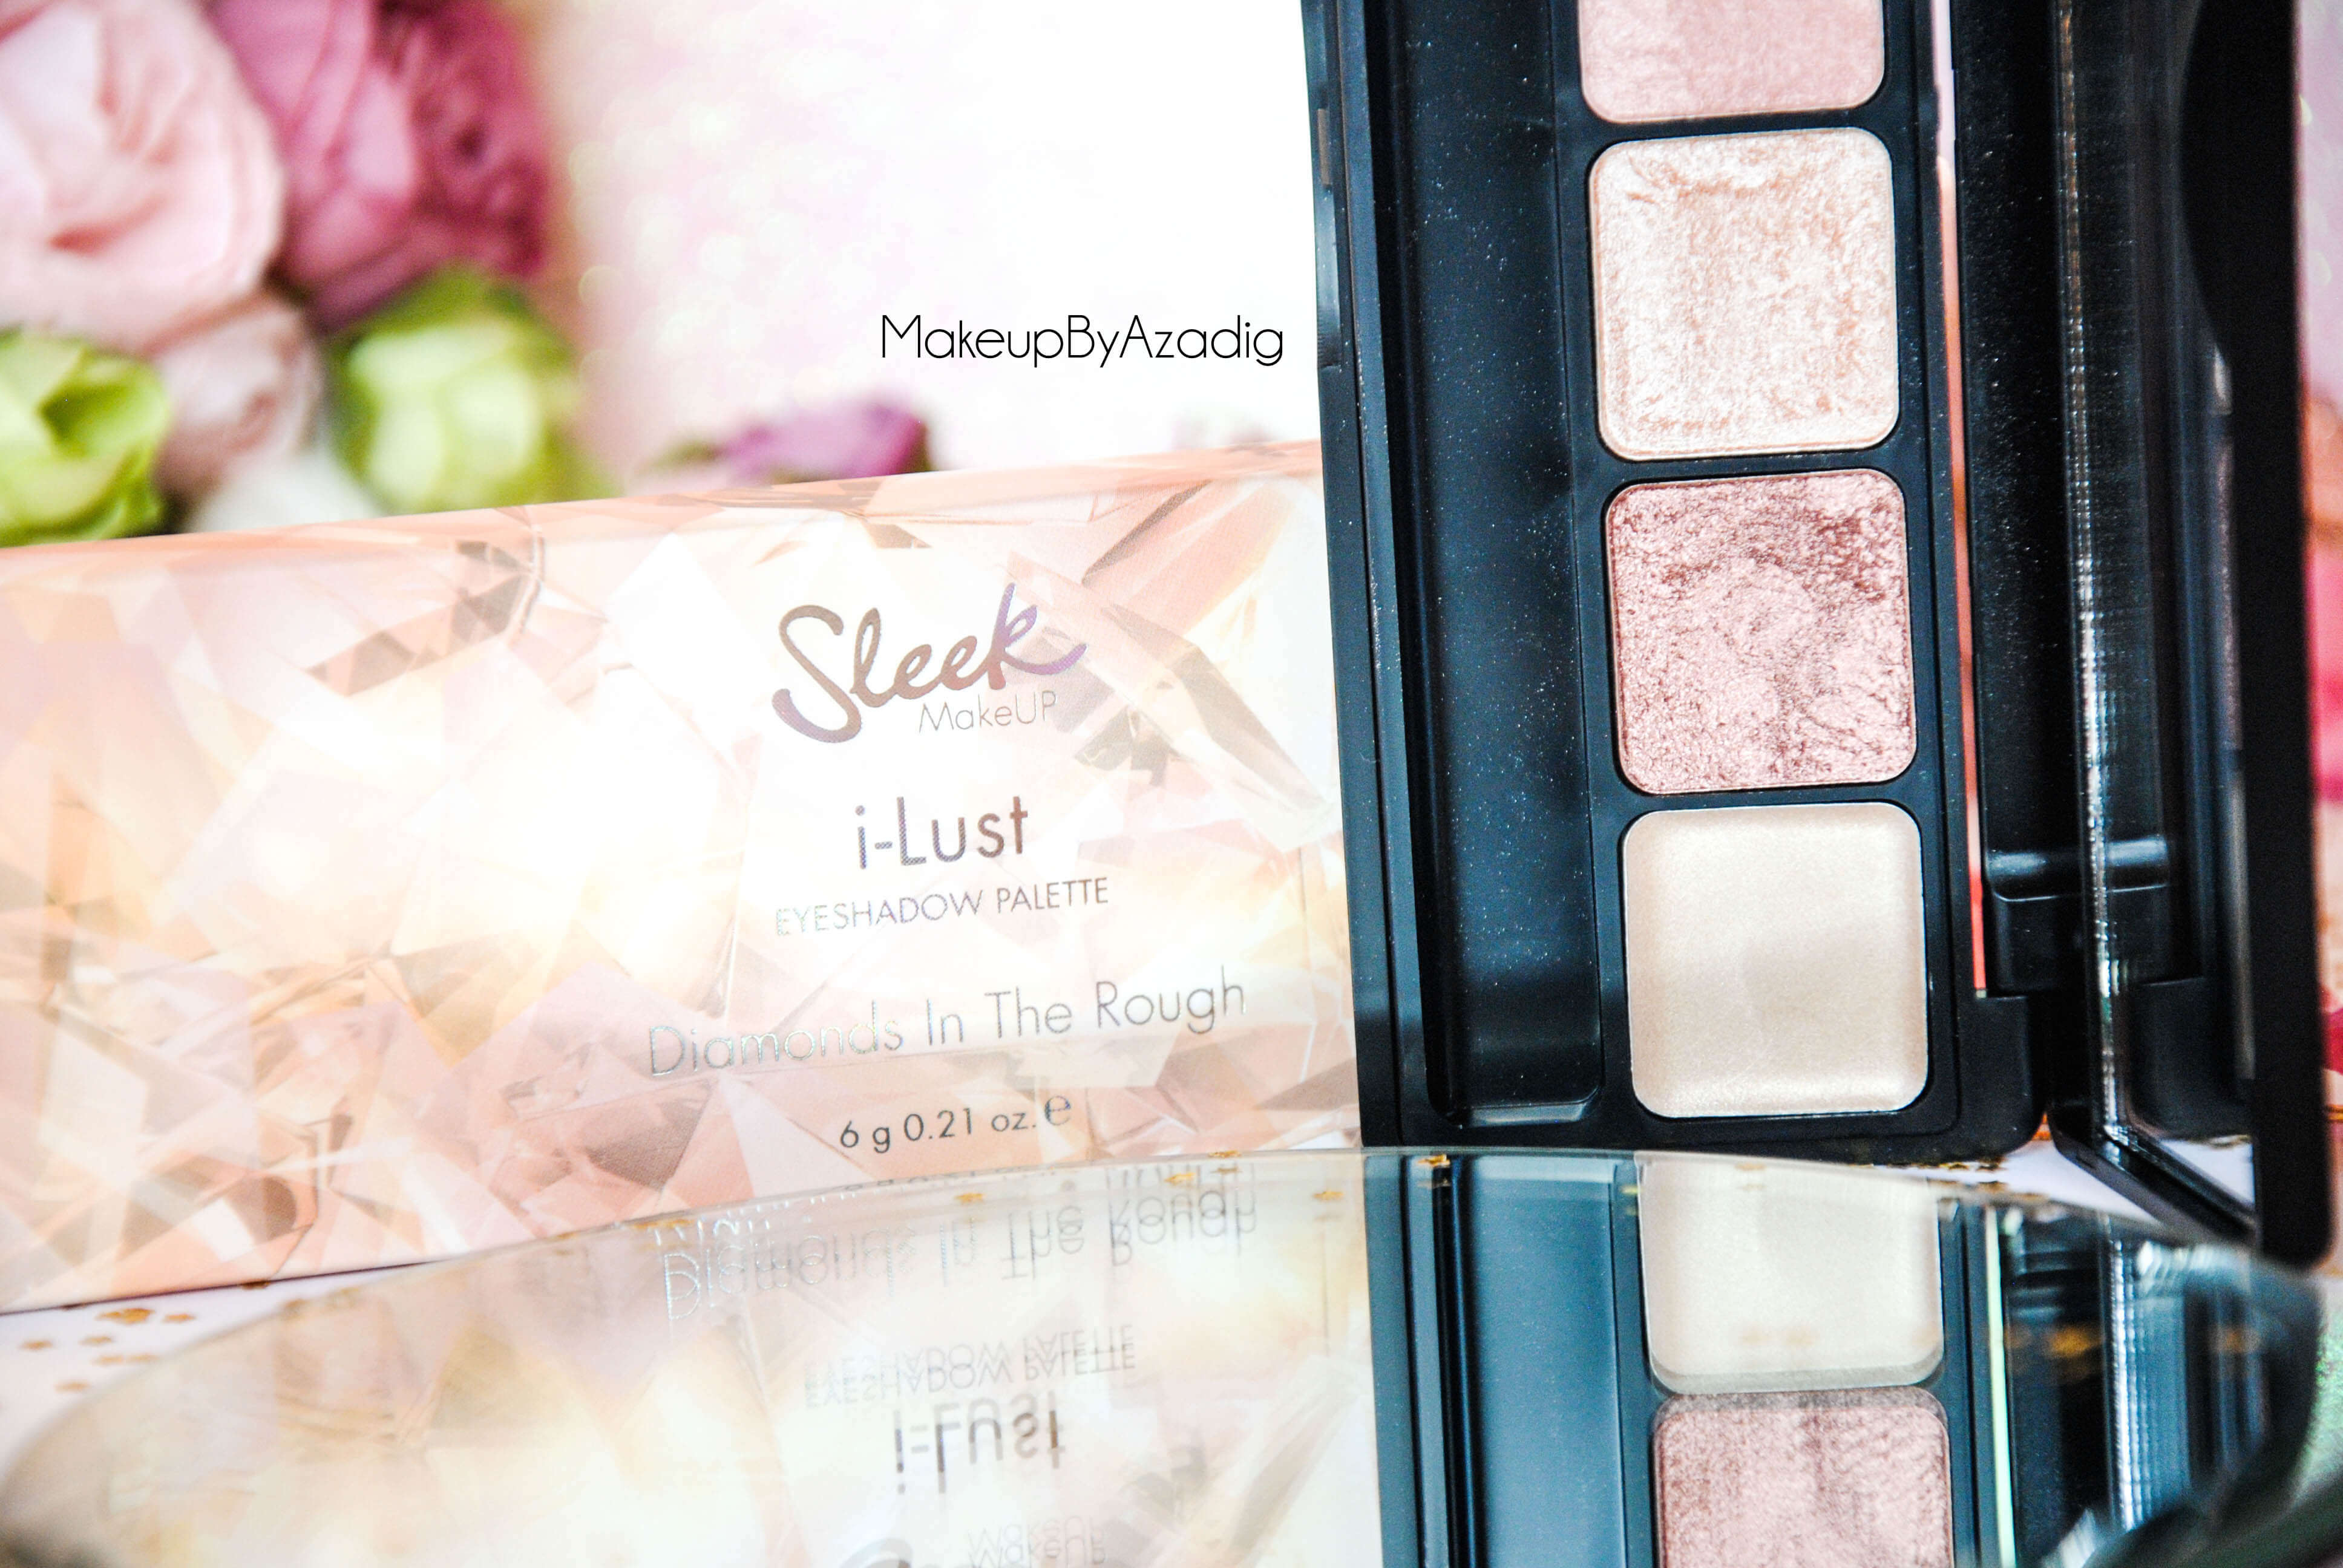 palette-eyeshadow-sleek-makeup-diamonds-in-the-rough-ilust-sephora-paris-makeupbyazadig-noel-code-promo-avis-prix-cute